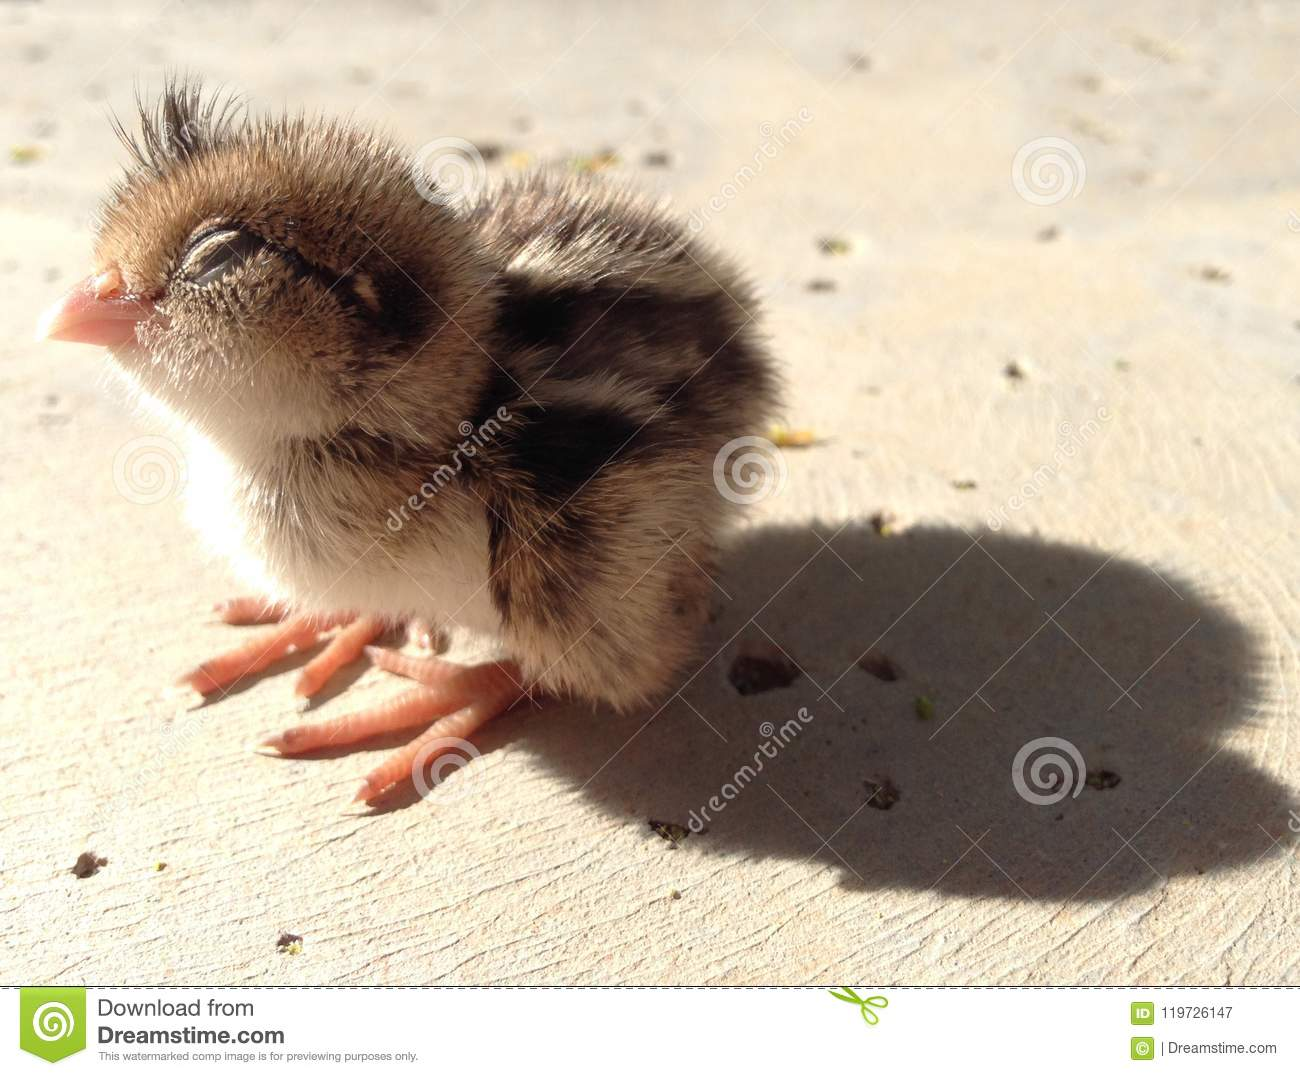 Baby Quail With Eyes Closed Napping Stock Image Image Of Animals